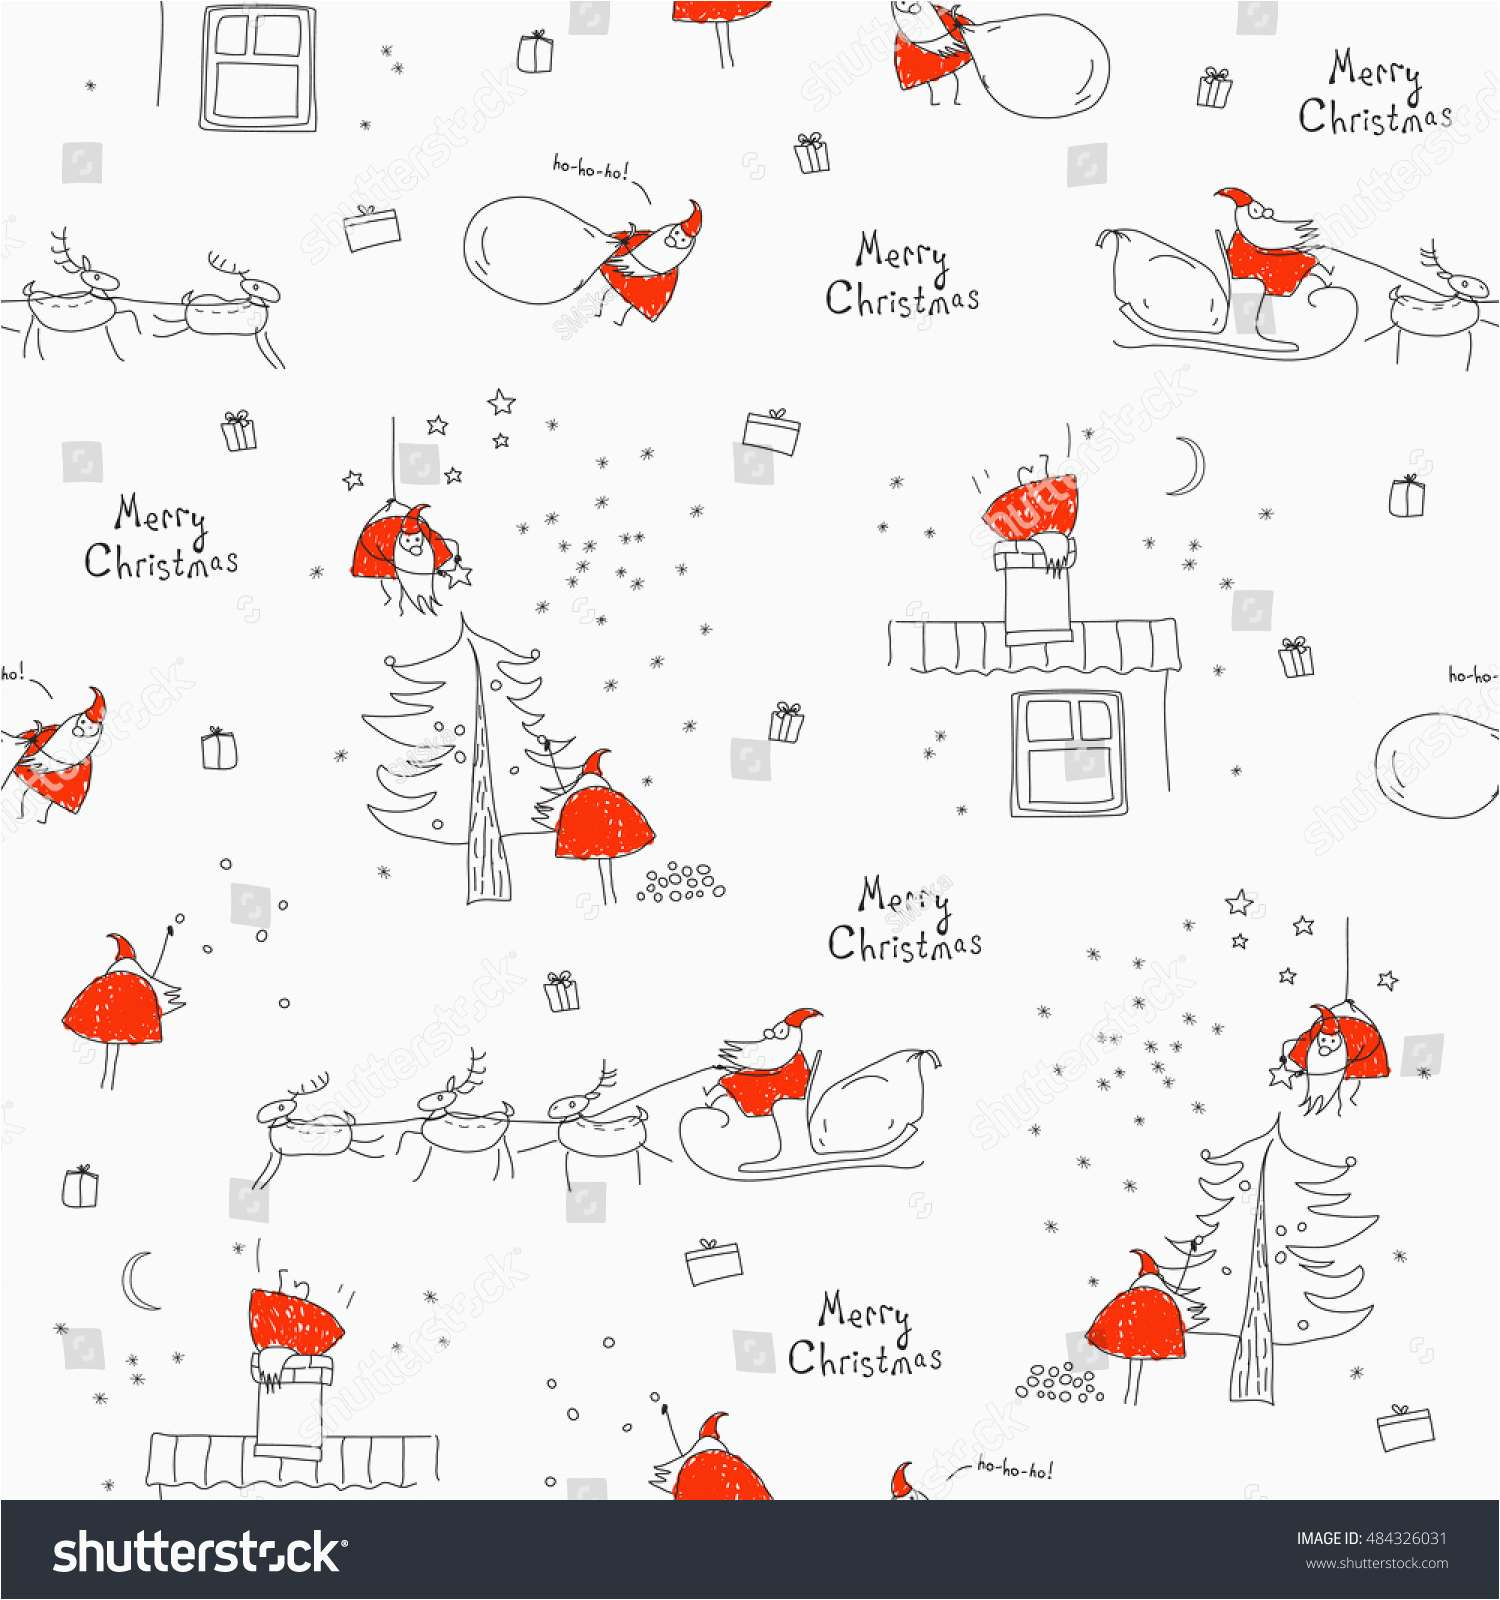 1500x1600 Merry Christmas Santa Claus Top Search Seamless Pattern Merry